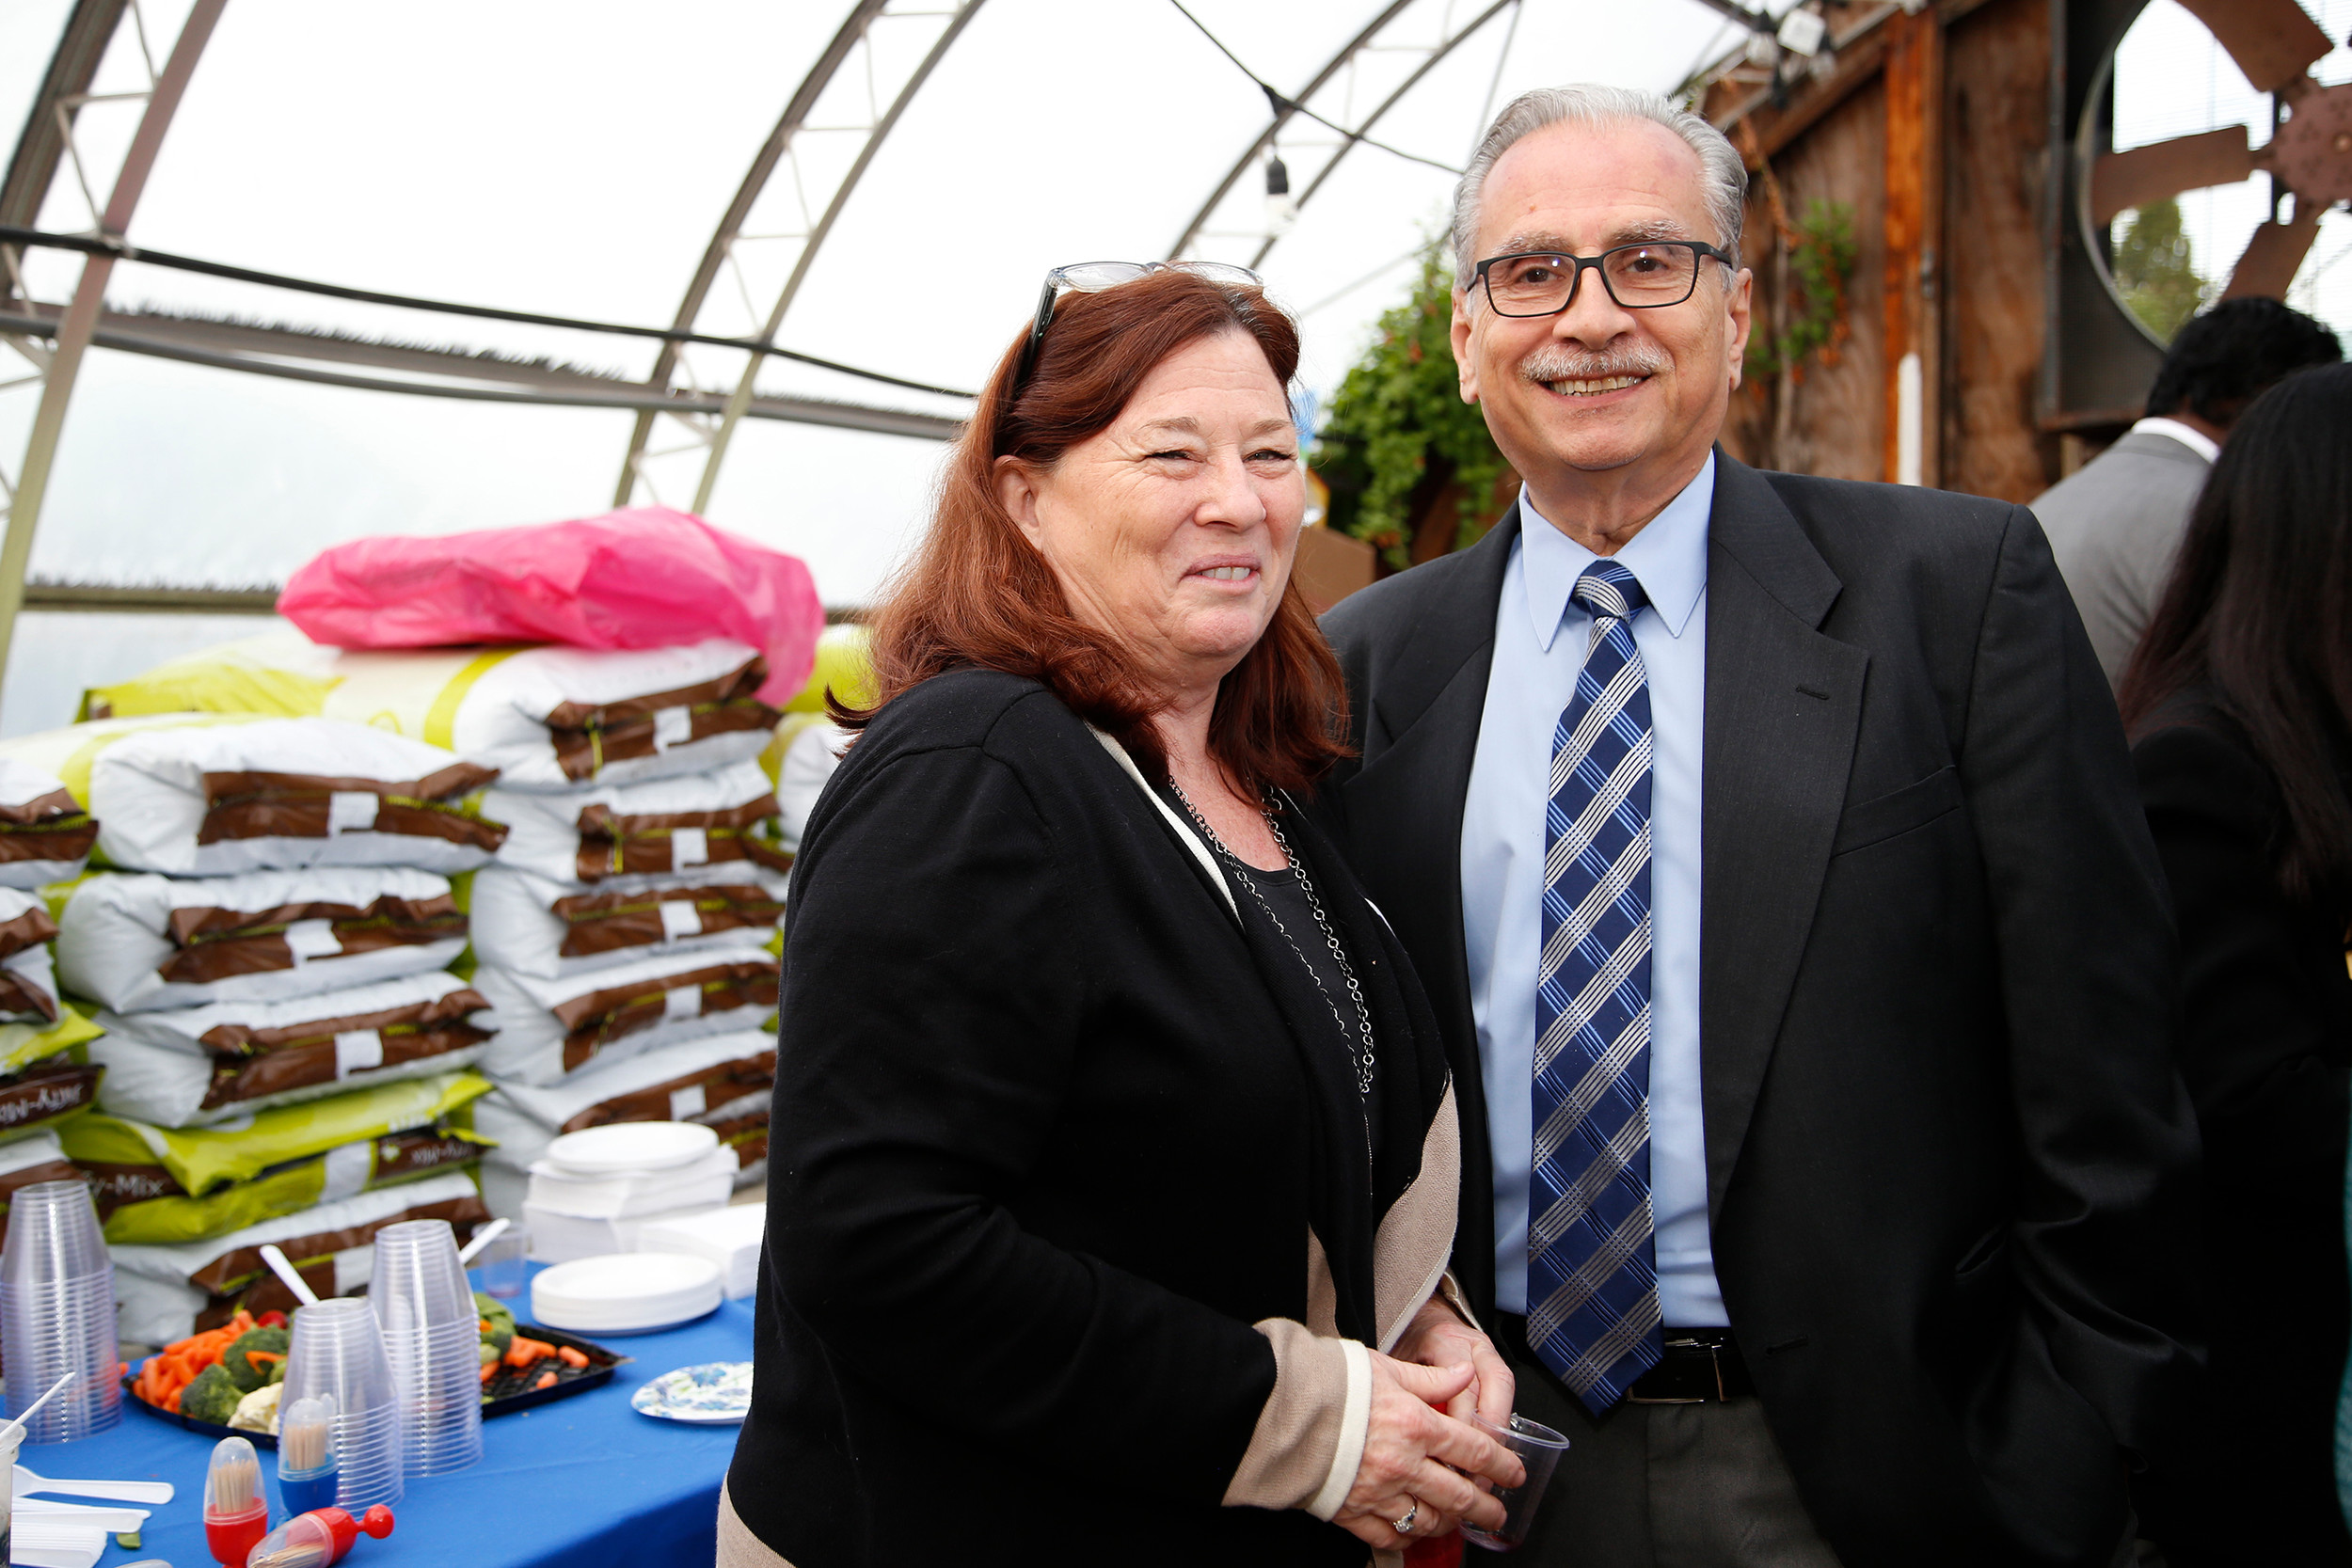 Kathi Monroe and Jack Sorrentino of the Malverne Chamber.